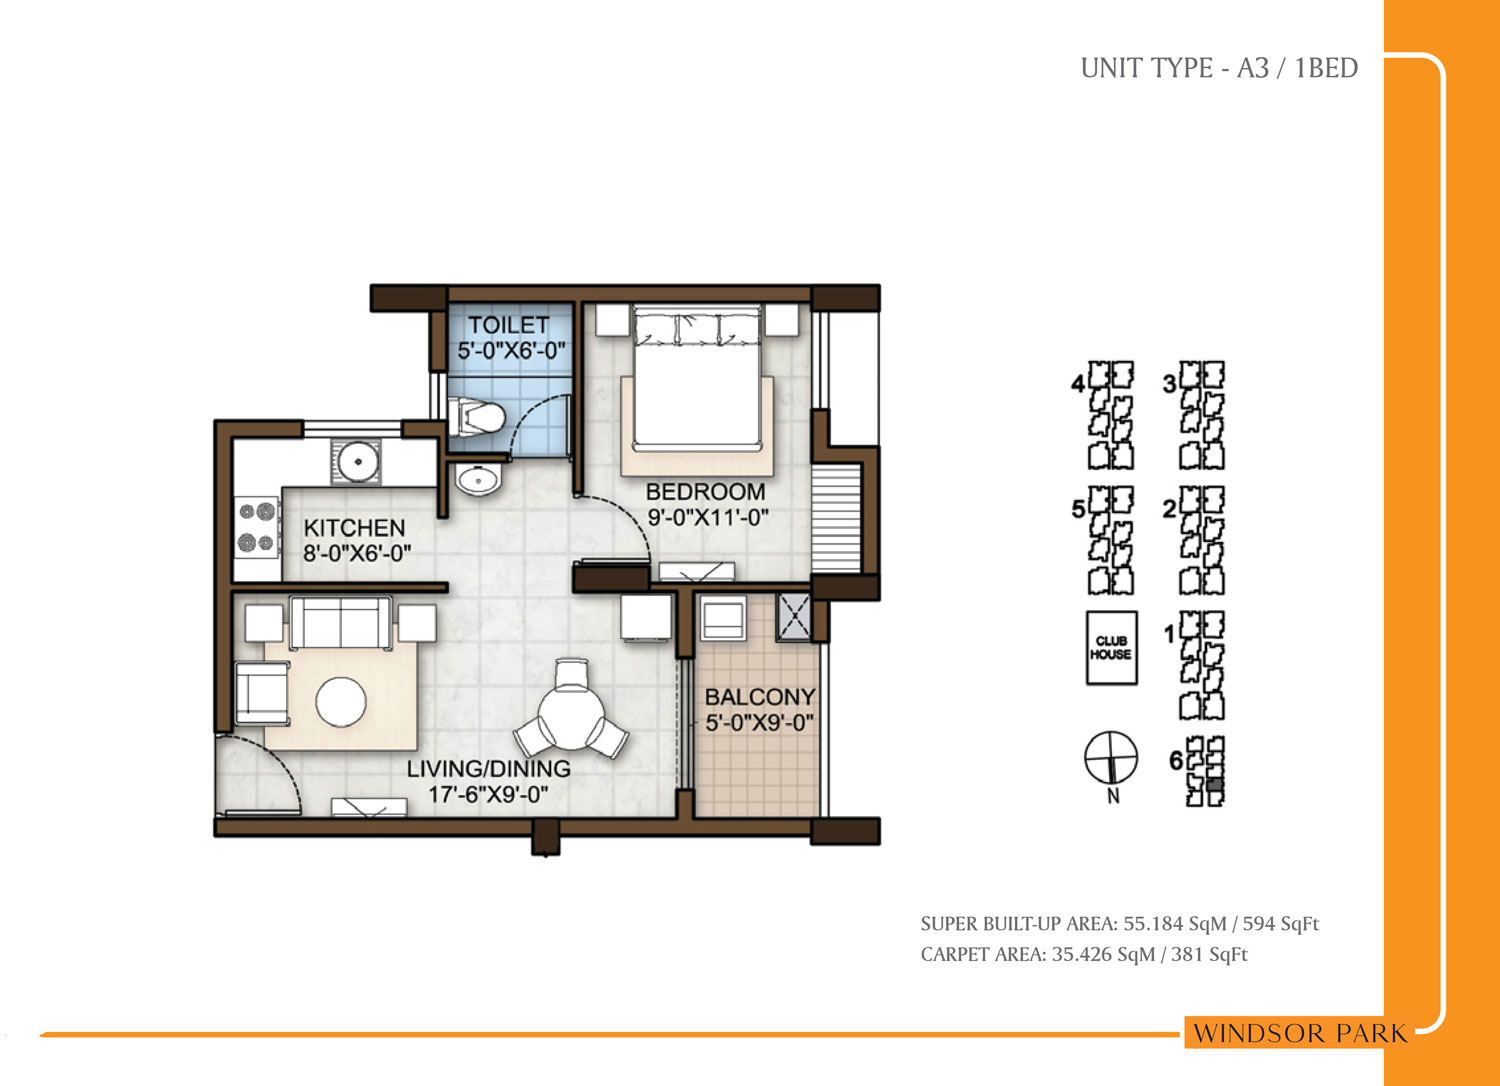 Type A3 - 594 Sq Ft